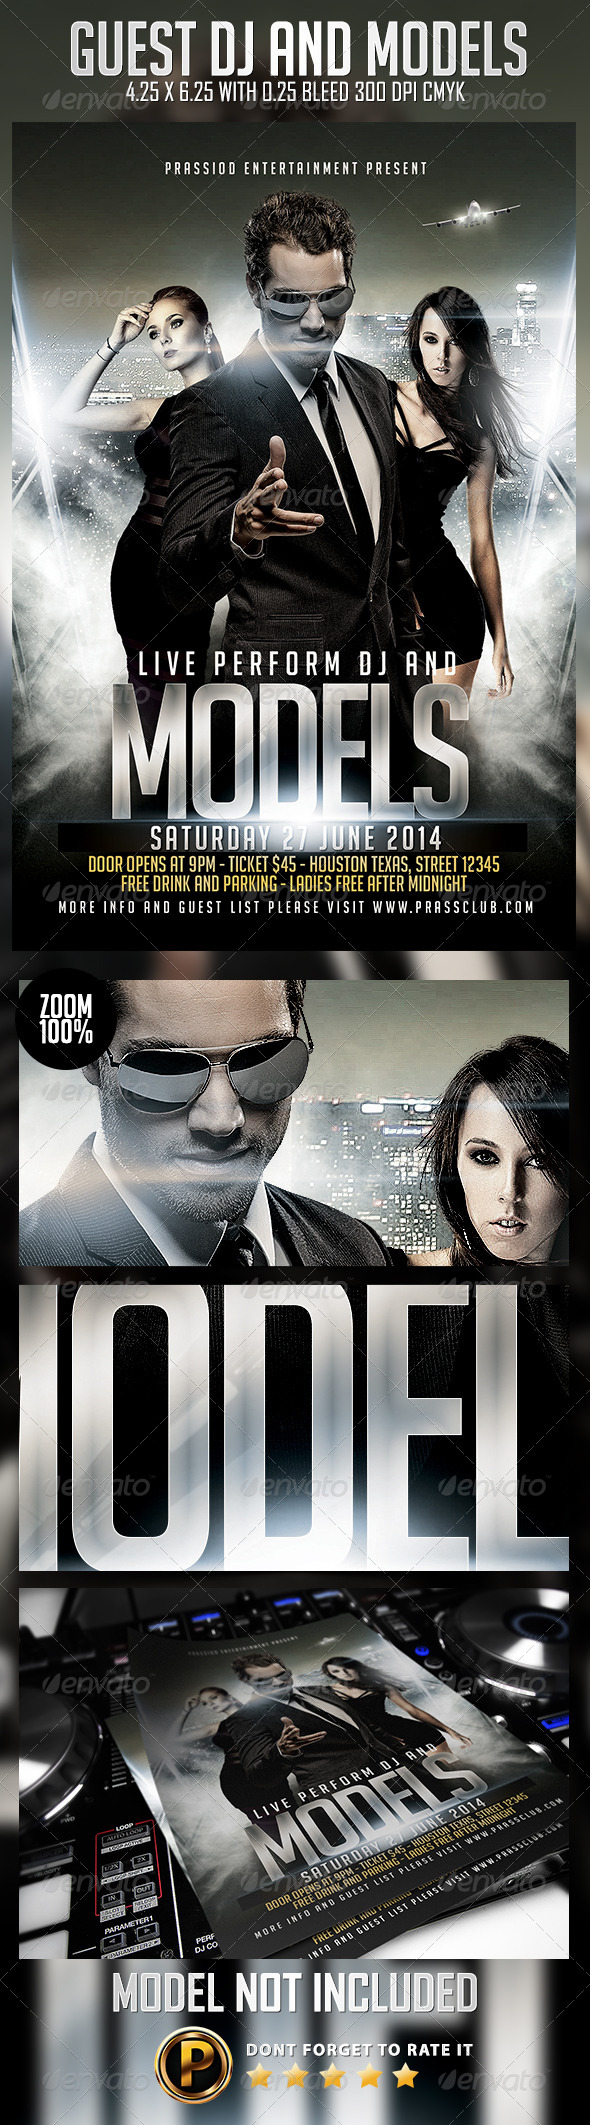 Guest DJ And Models Flyer Template - Clubs & Parties Events